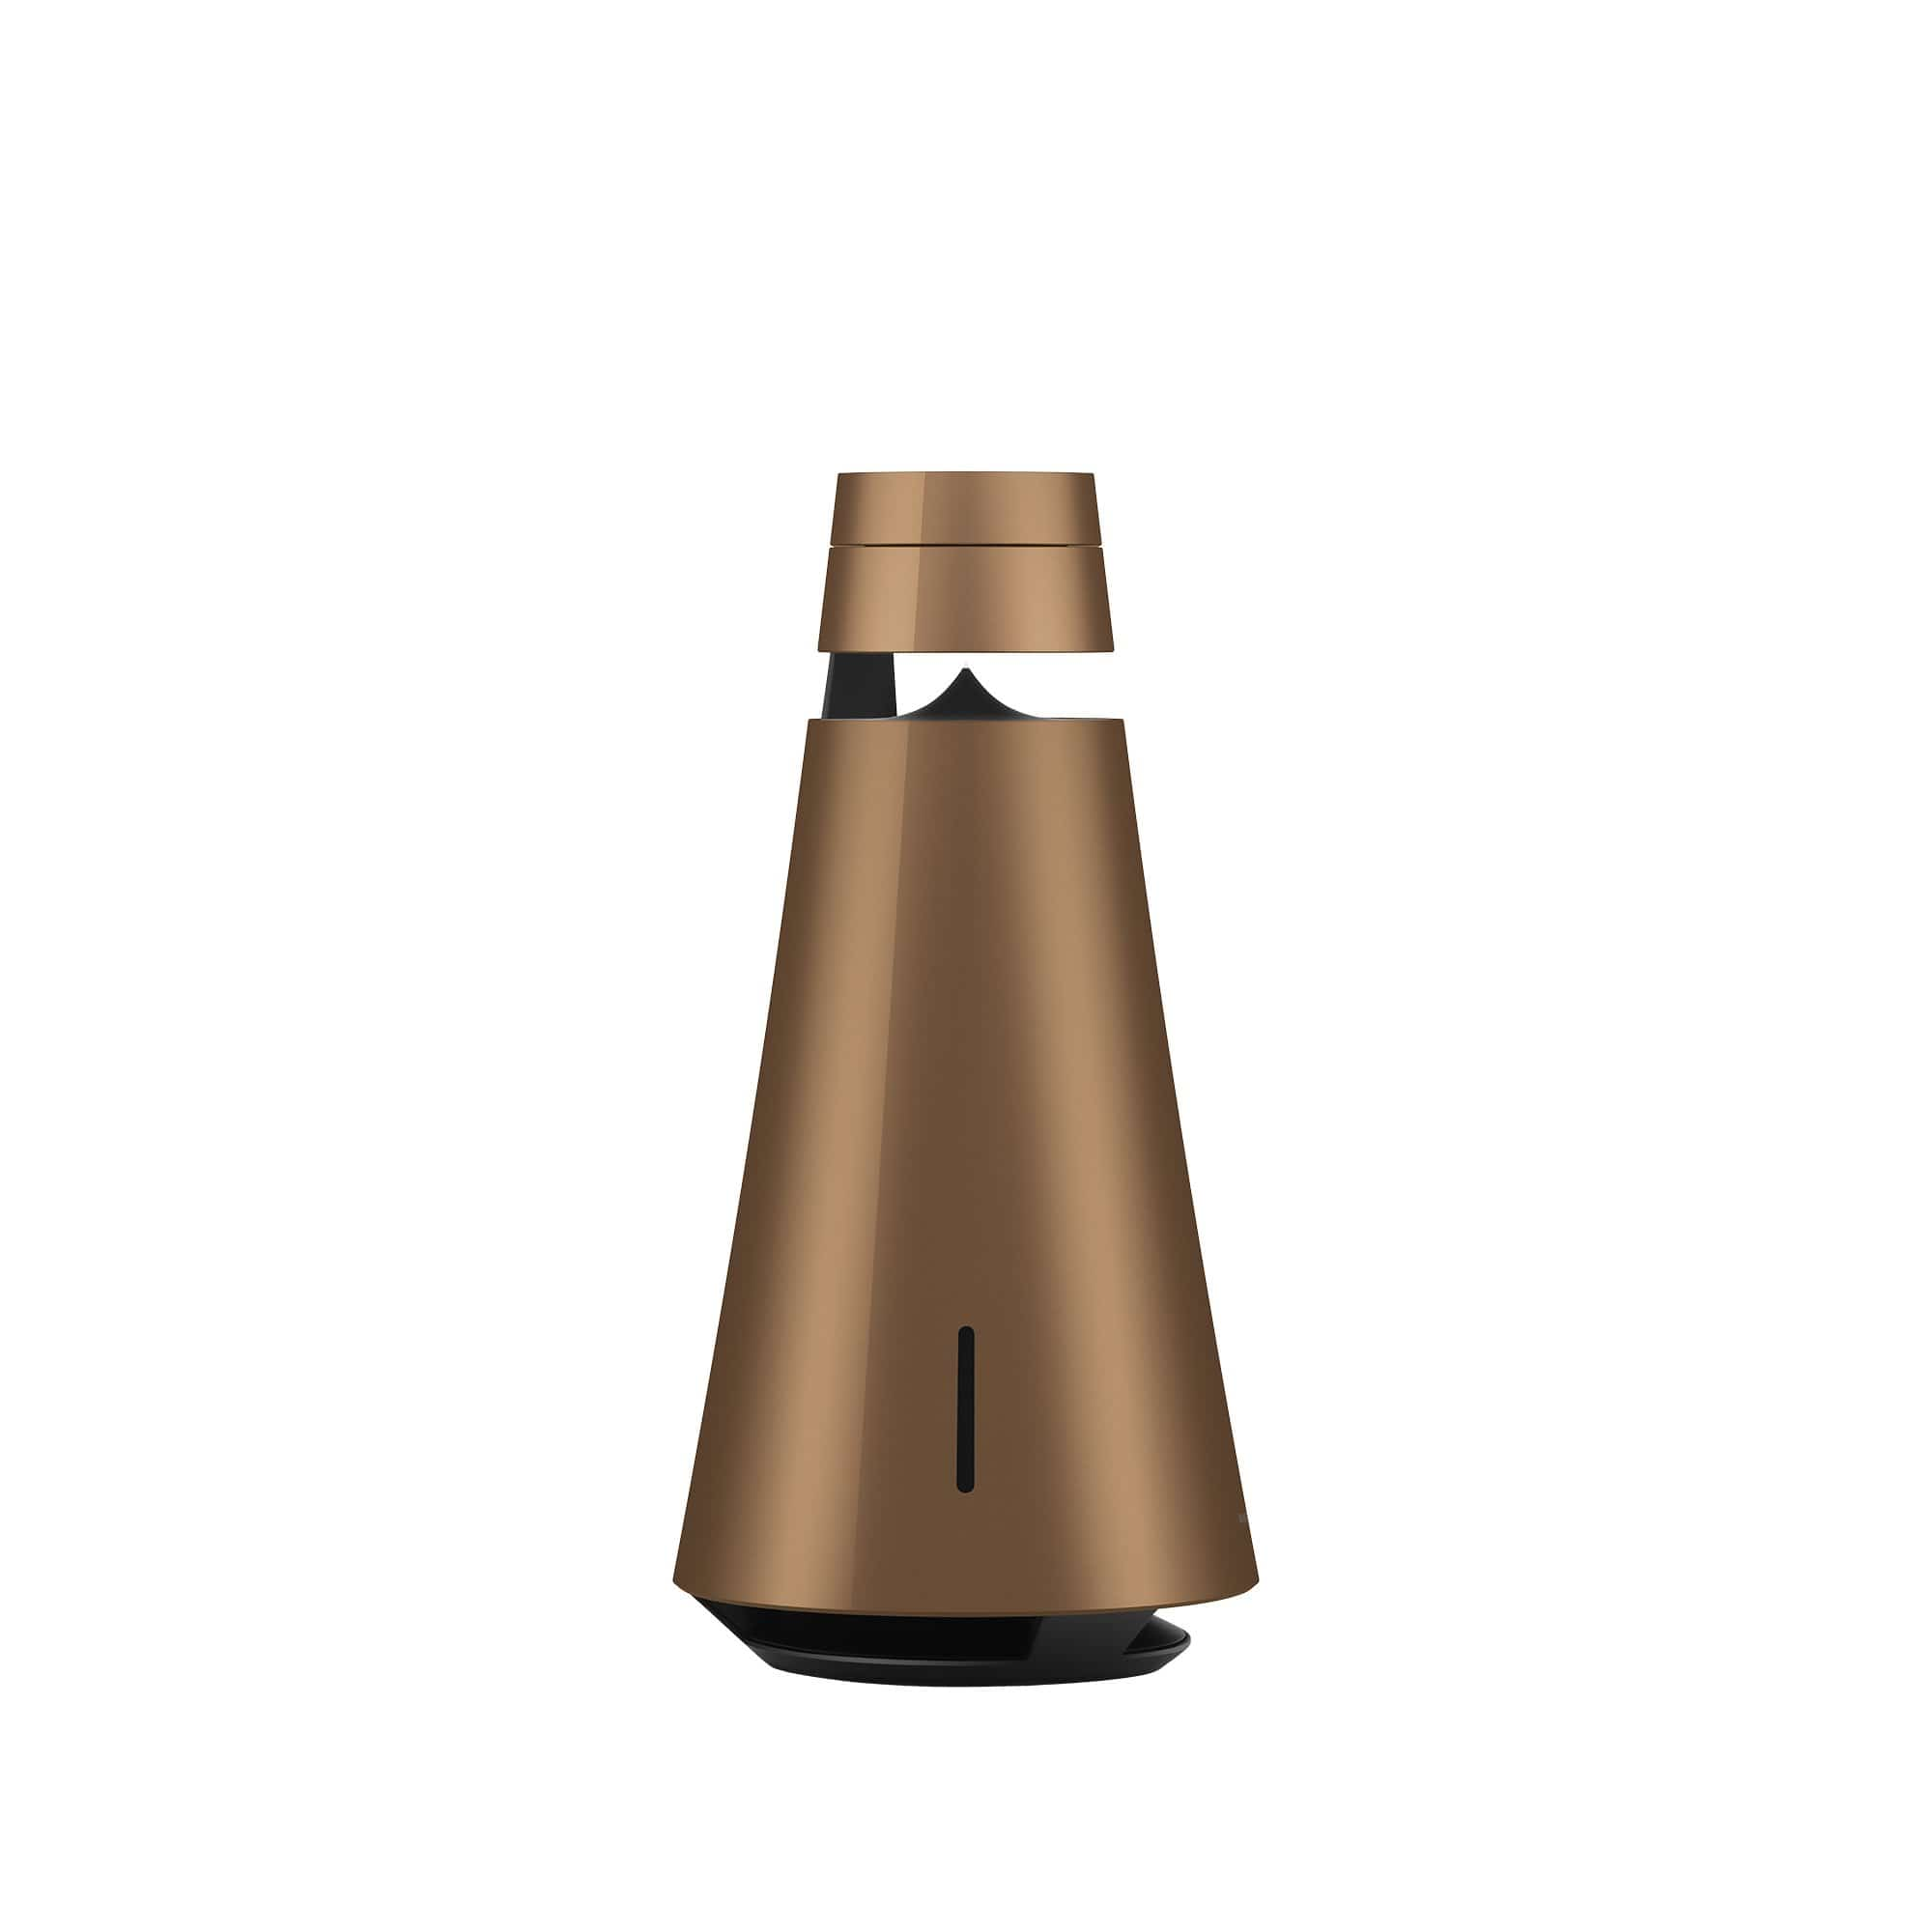 Bronze Beosound 1 + Voice Assist Wireless Portable Multiroom Speaker